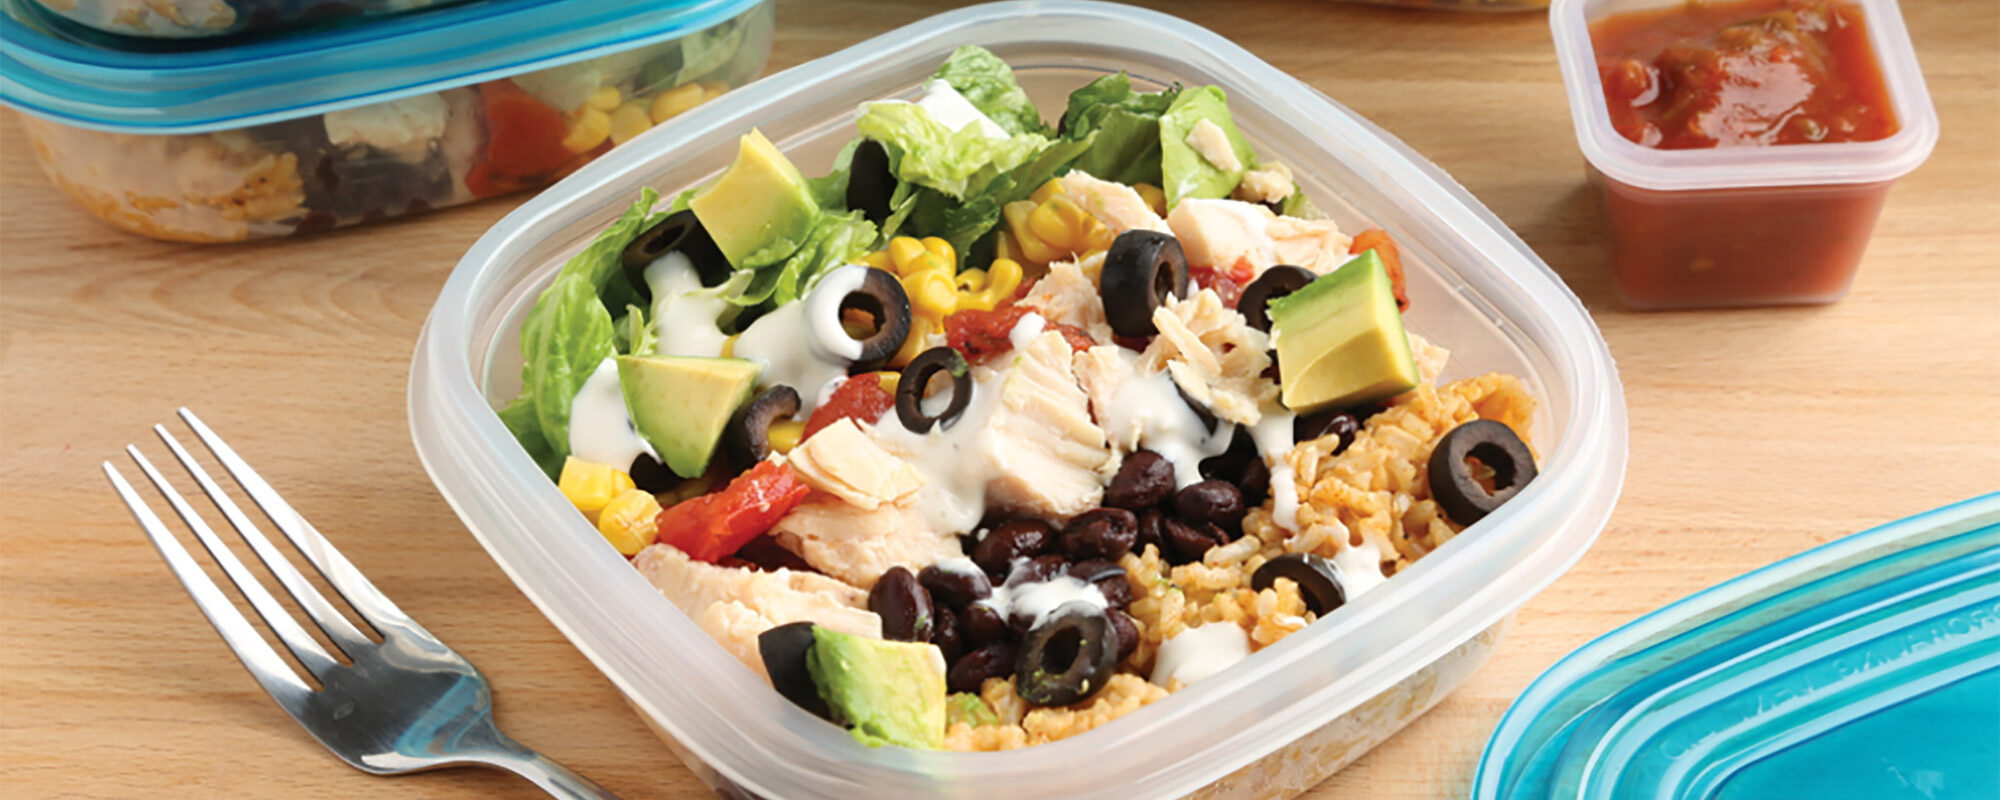 Chicken Burrito Lunch Bowls